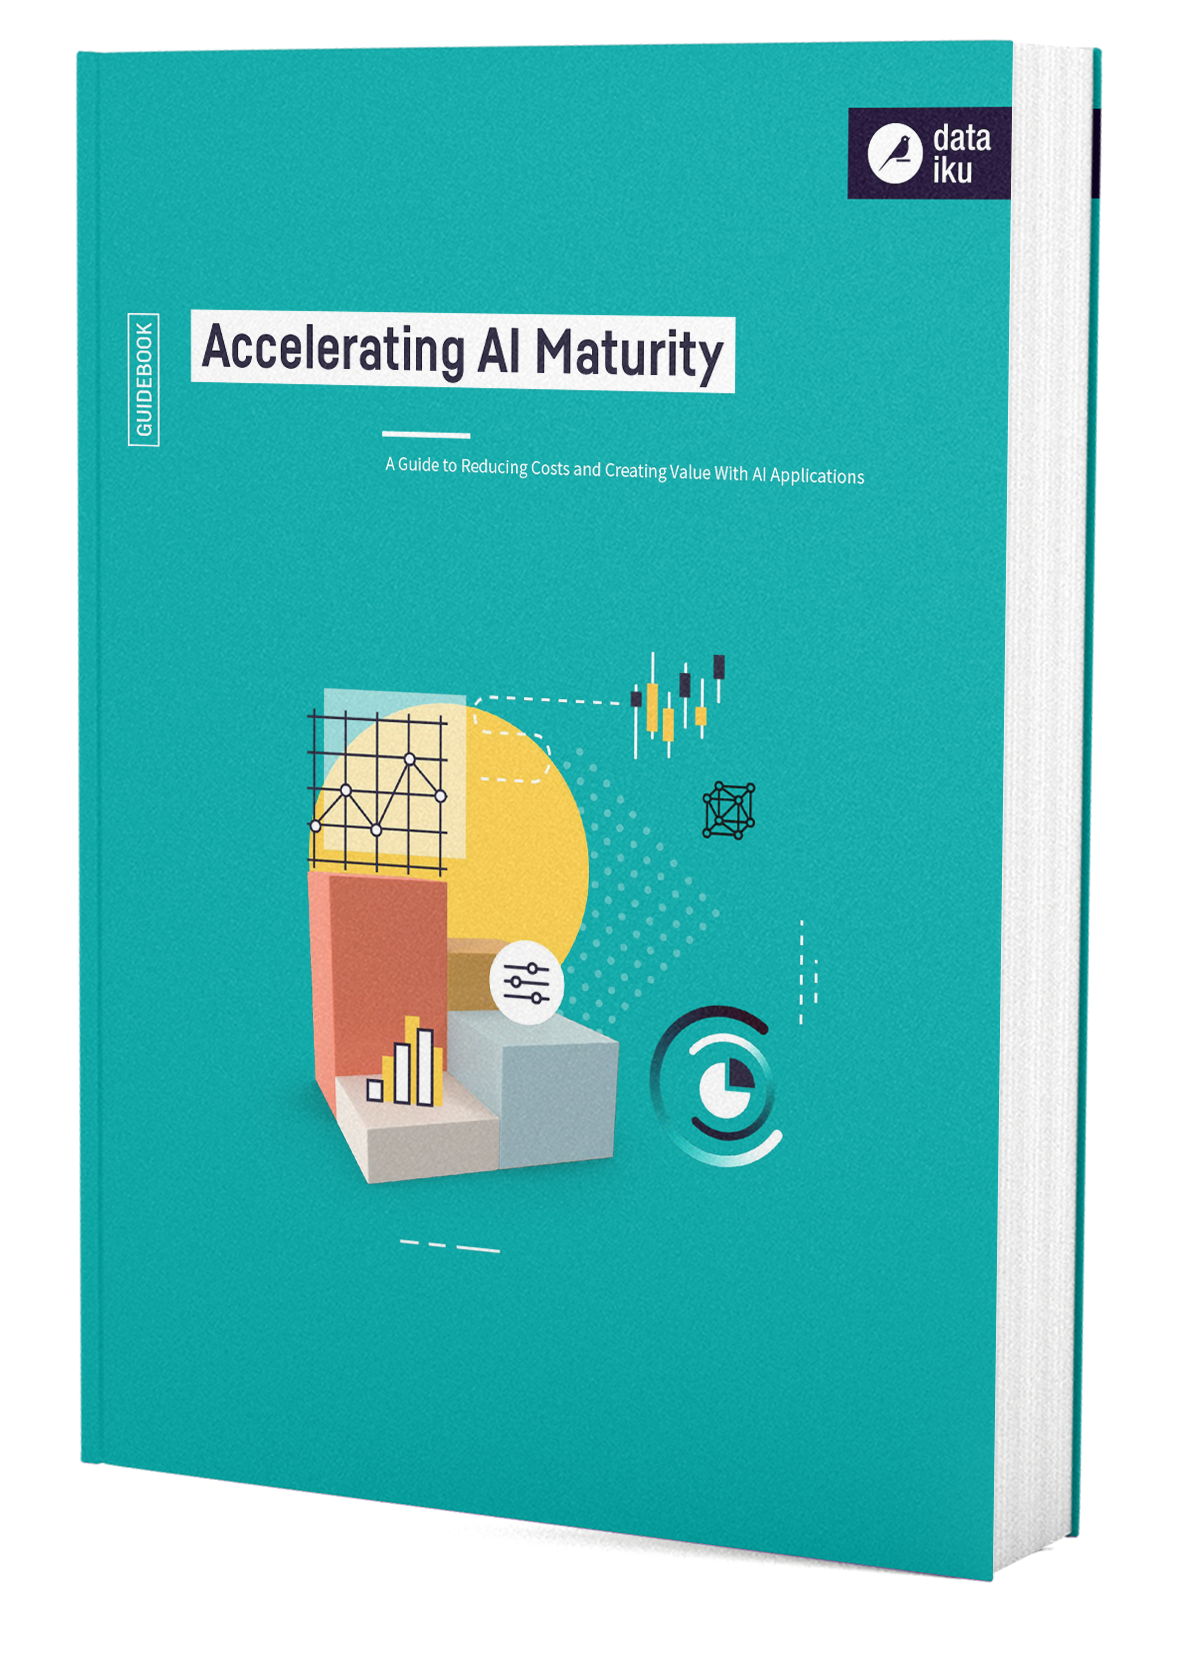 ACCELERATING-AI-MATURITY--A-GUIDE-TO-REDUCING-COSTS